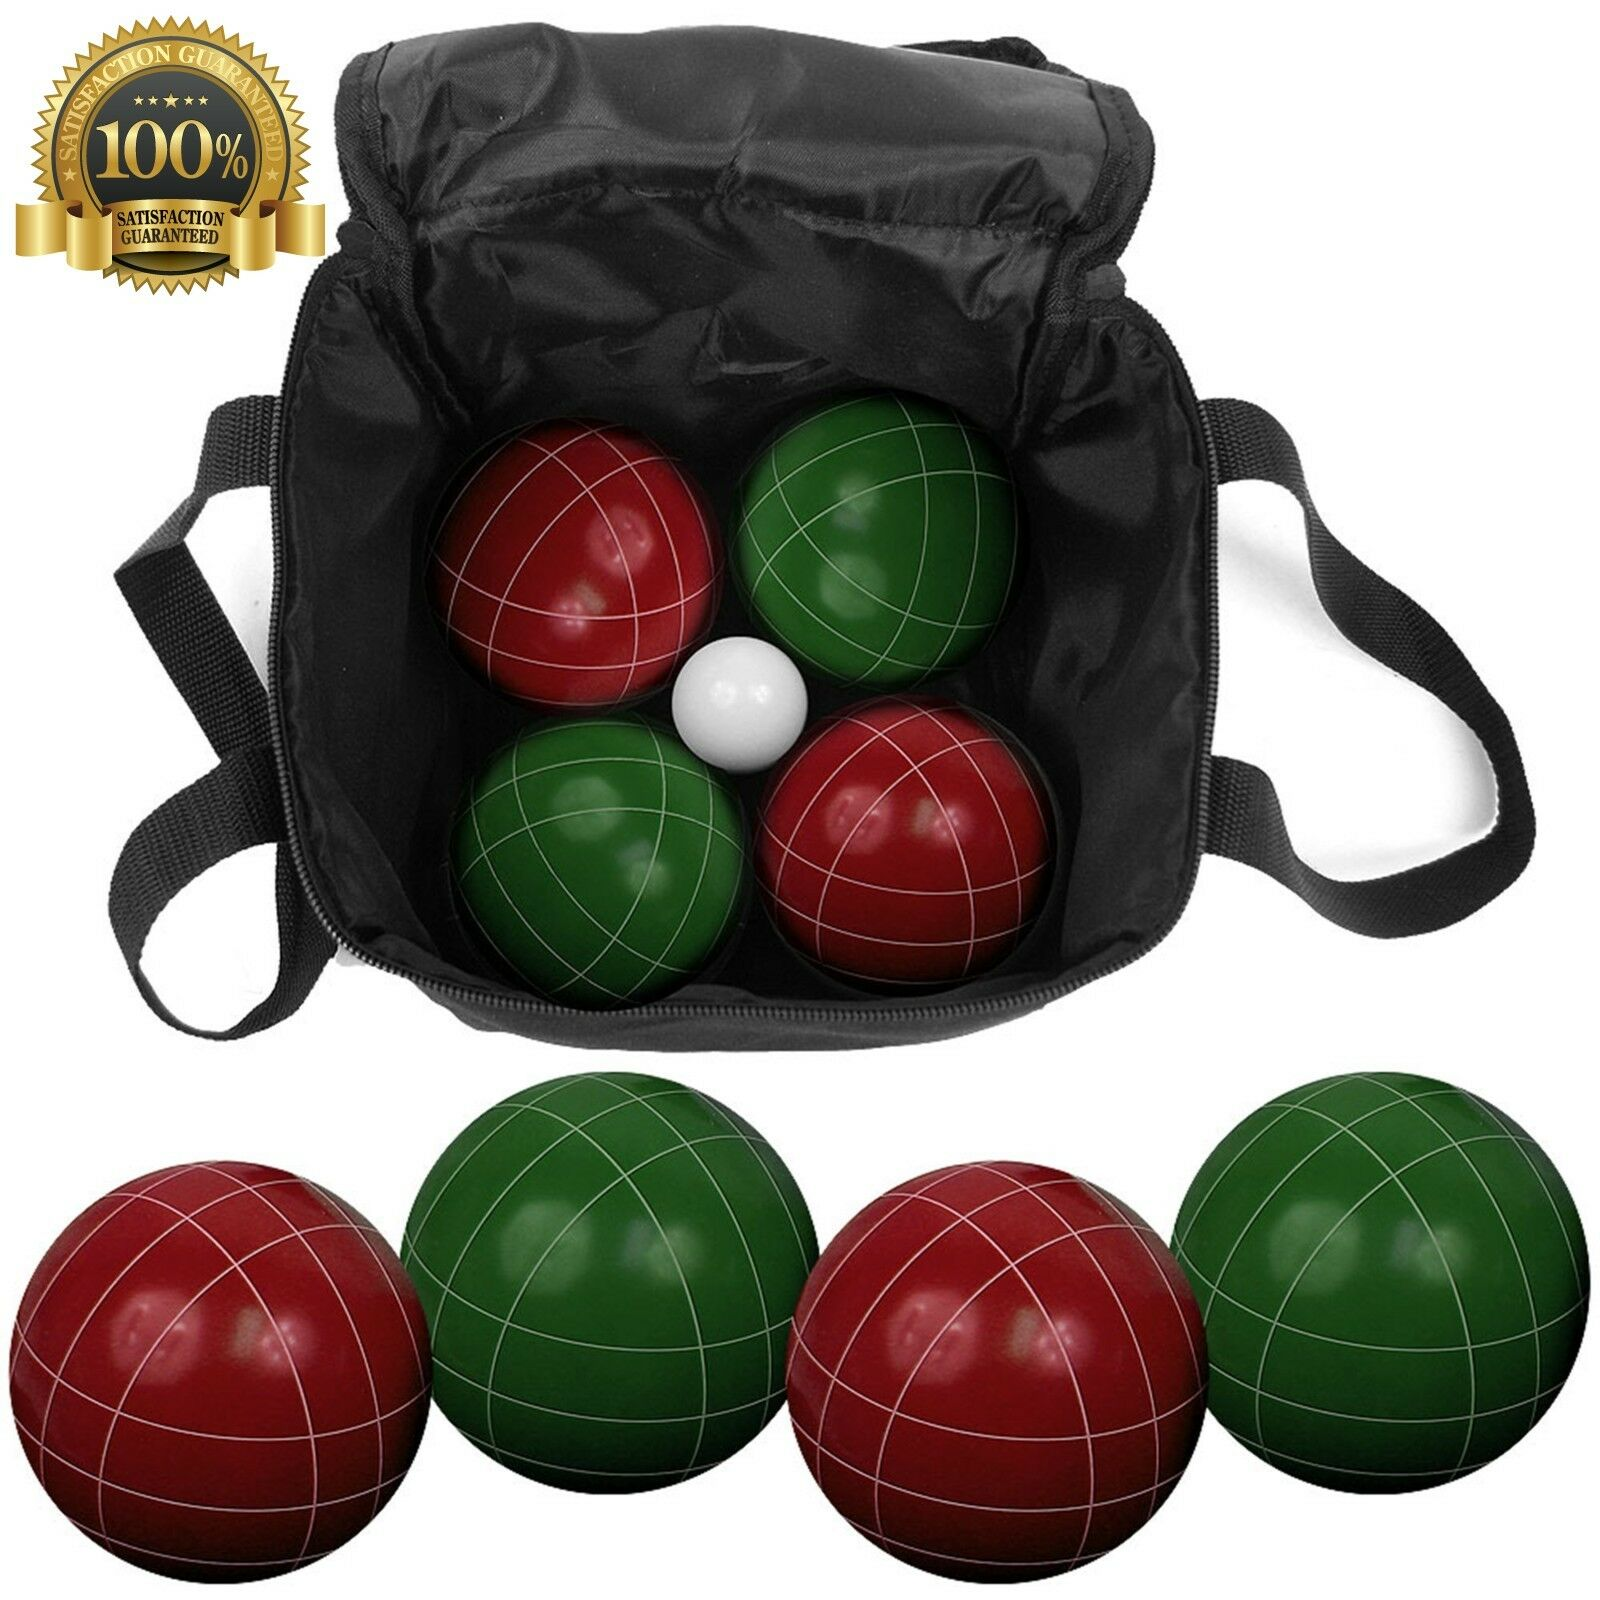 Trademark Summer Game Fun Bocce Ball Set Cary Case Bag Various Licenses Bowling